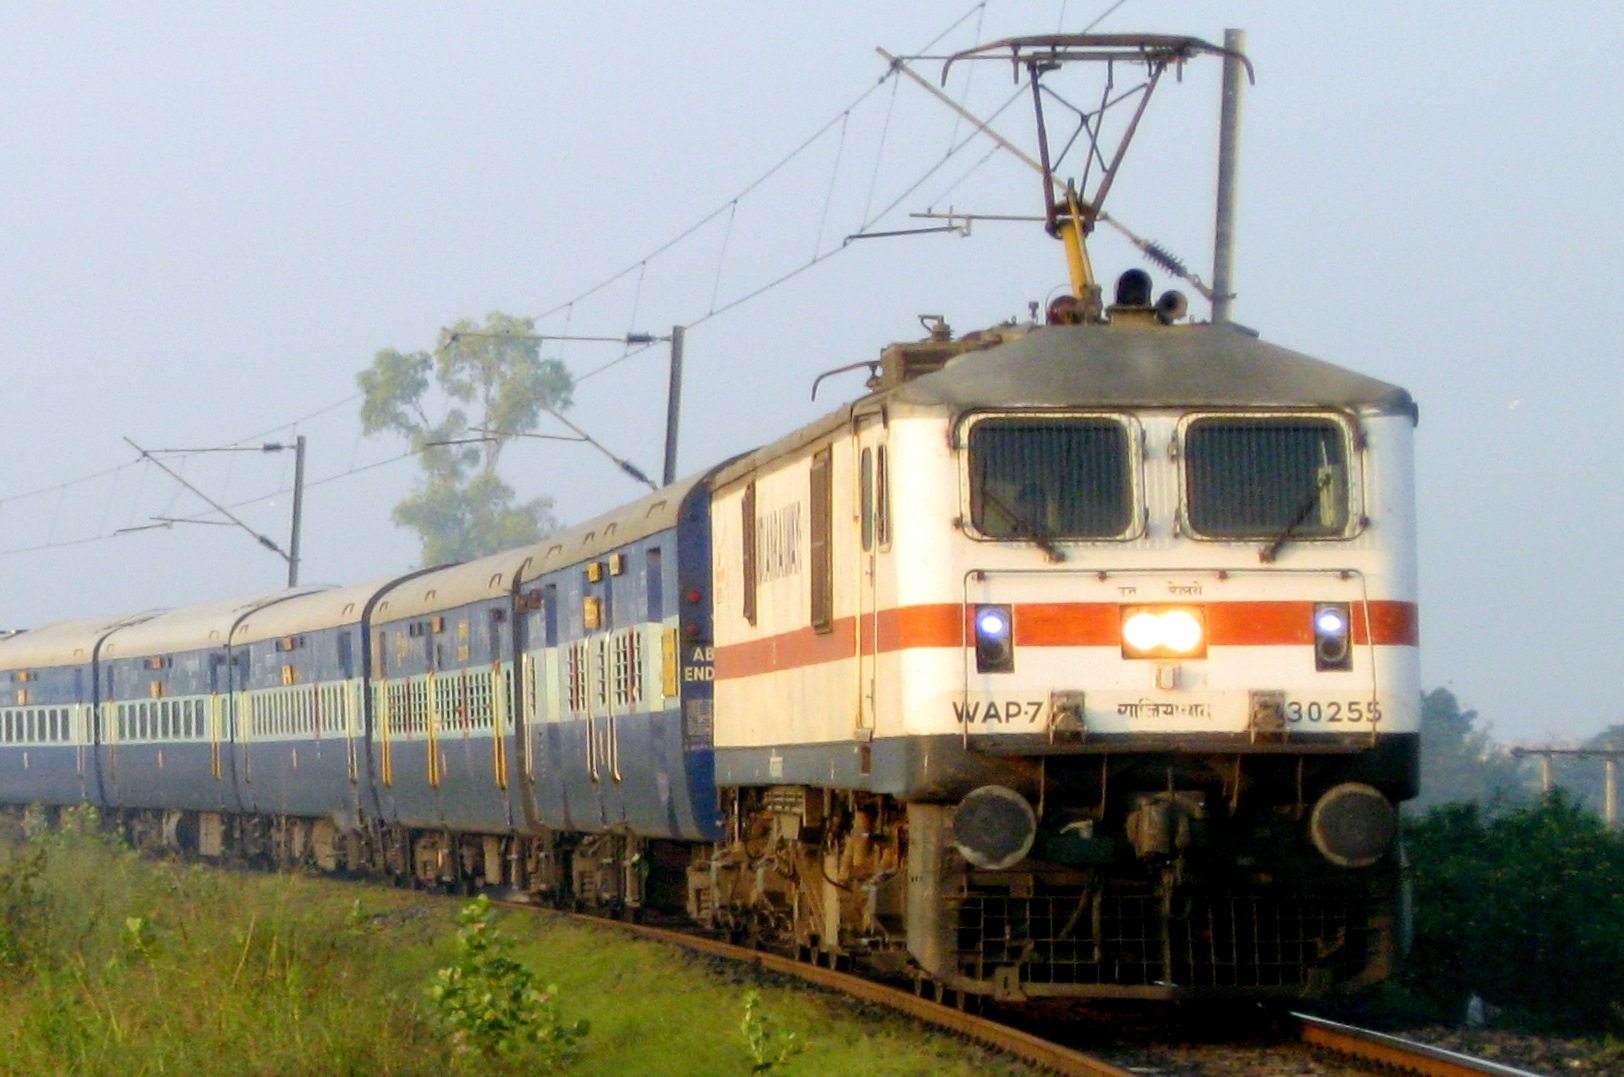 Train held up due to boulder on track near Lonavala